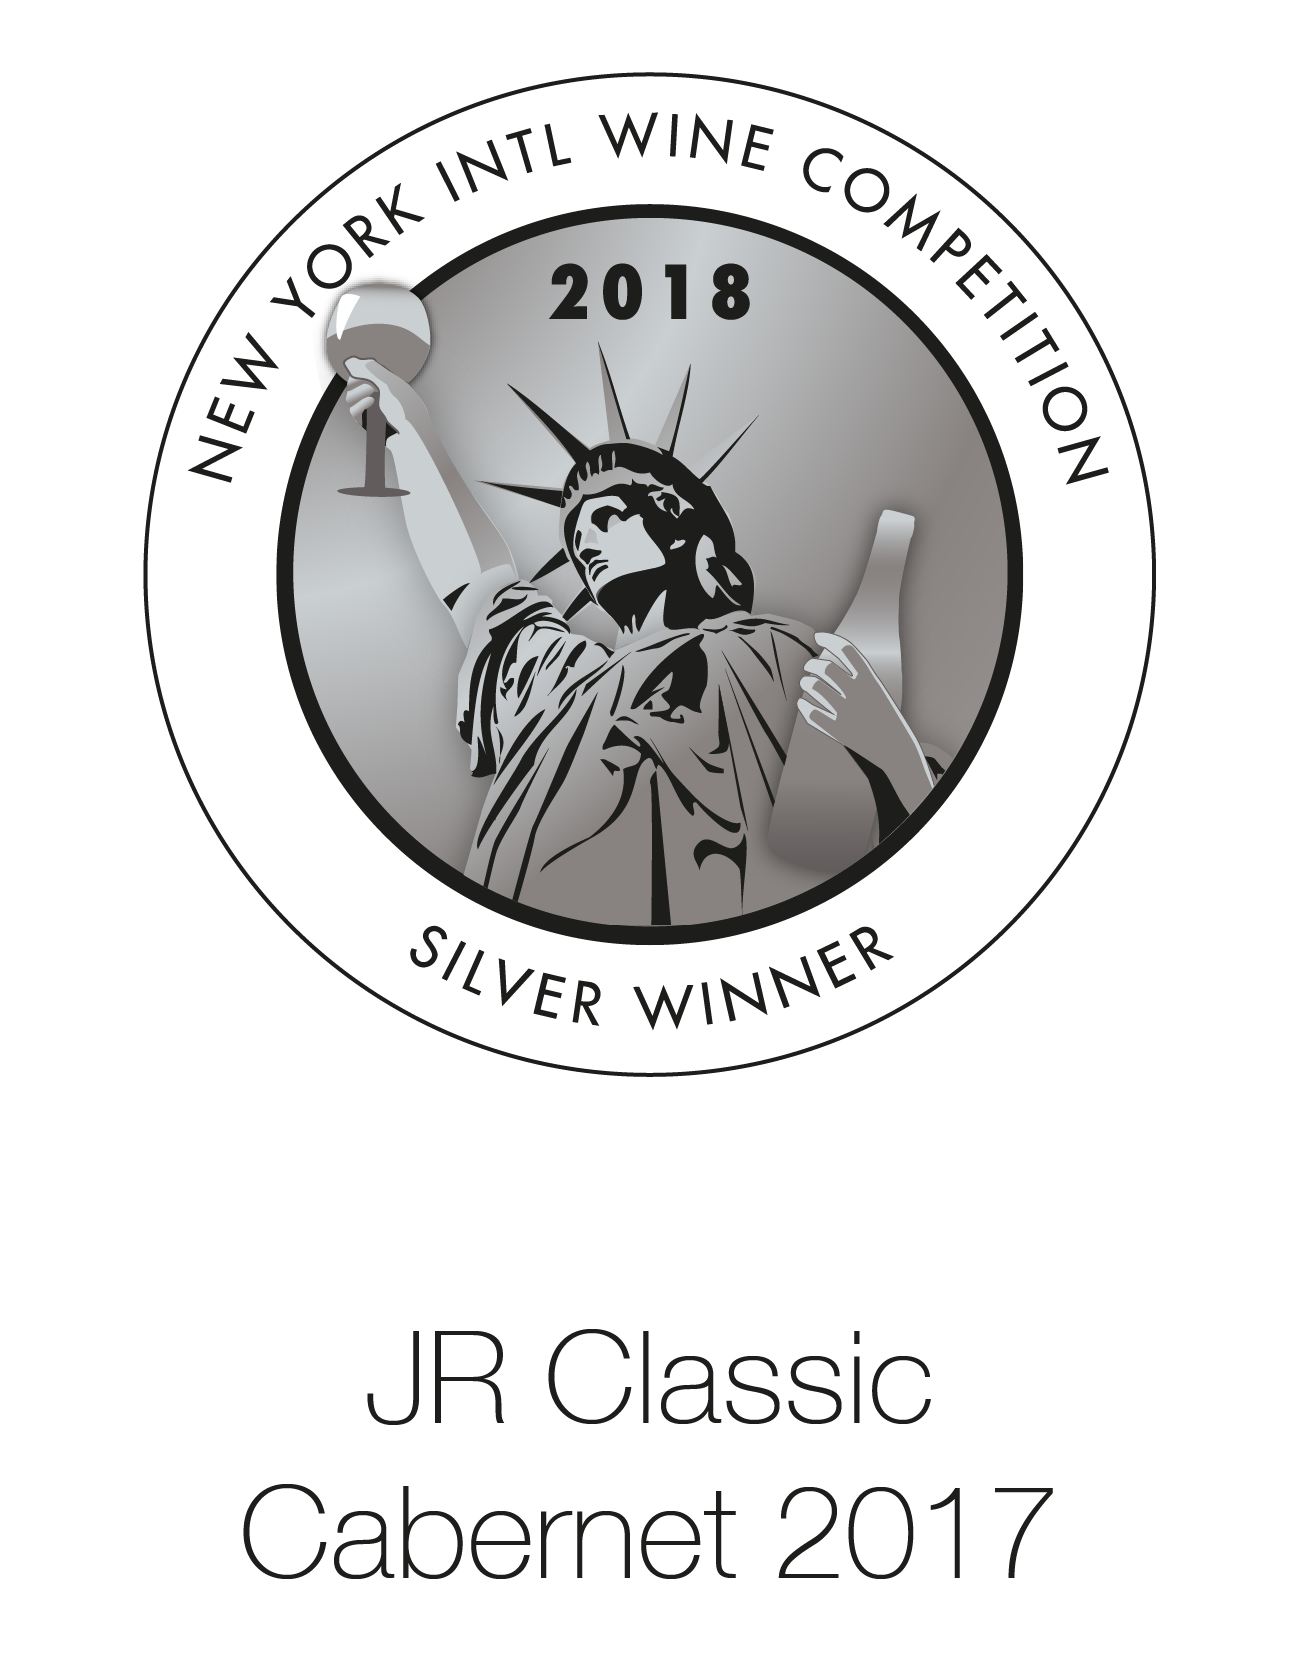 JR Cabernet Sauvignon 2017 Classic London Wine Competition 2018